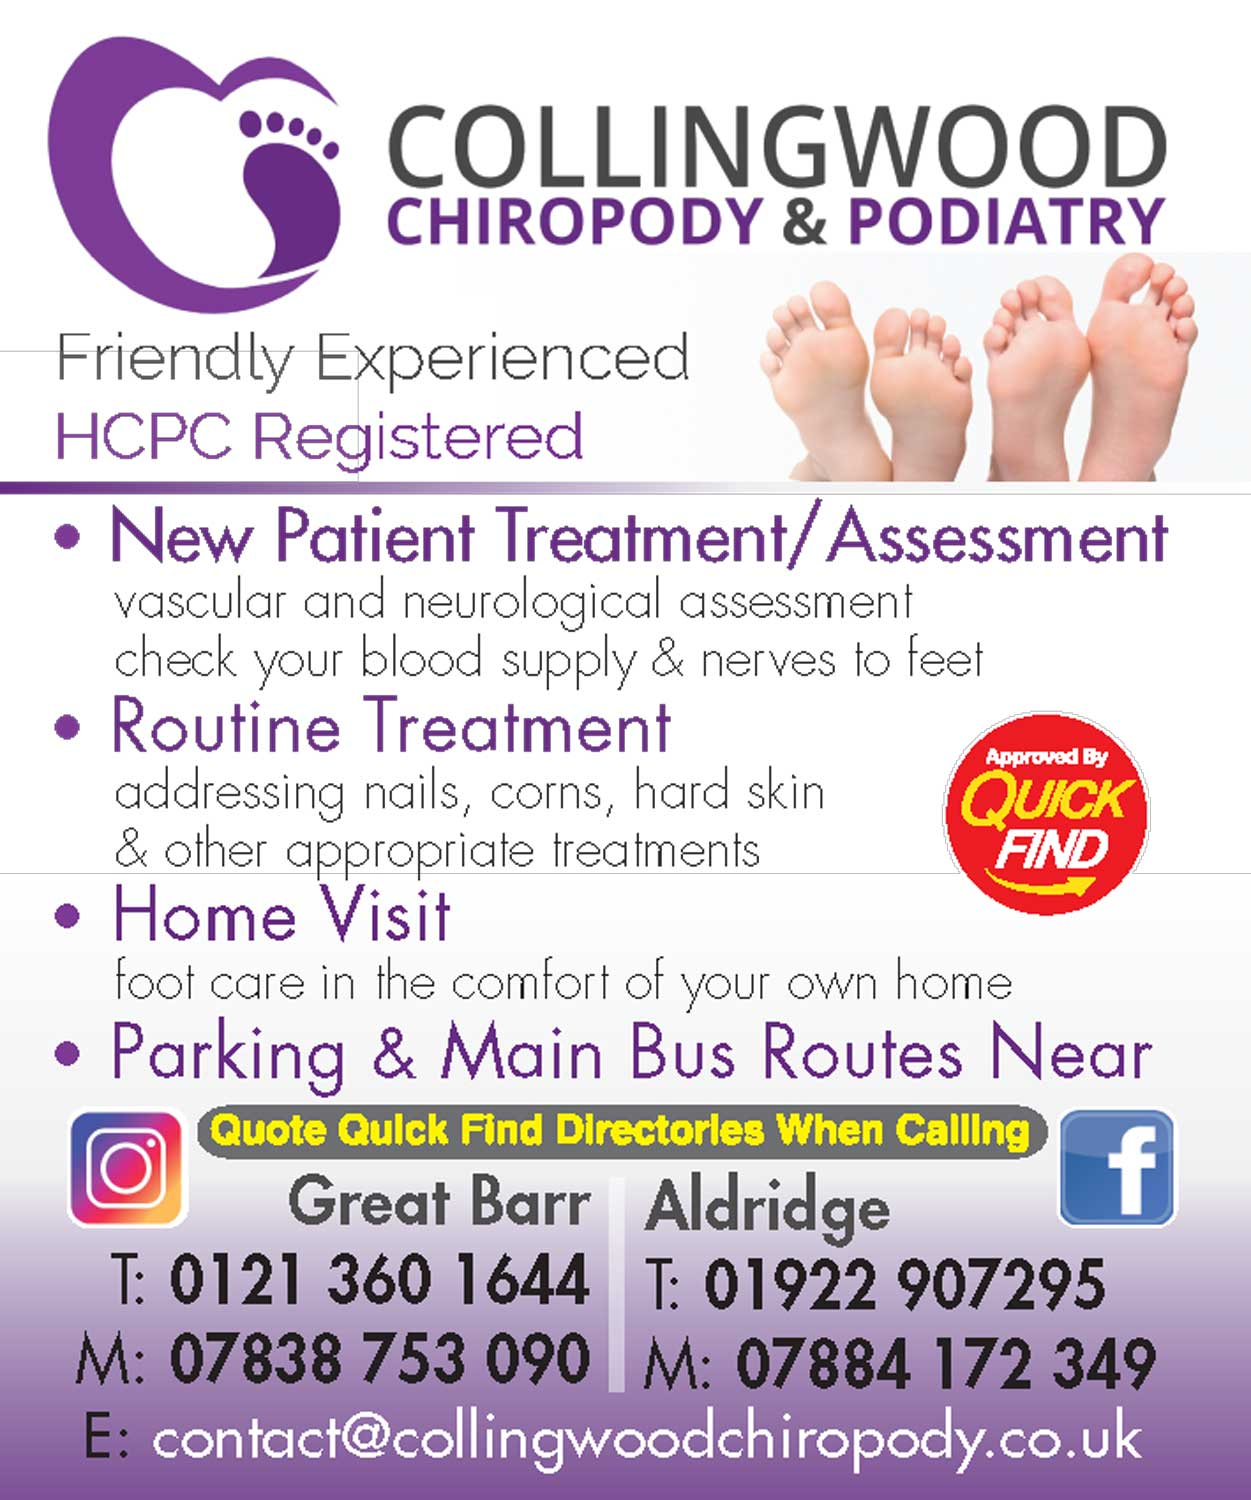 Collingwood Chiropody & Podiatry